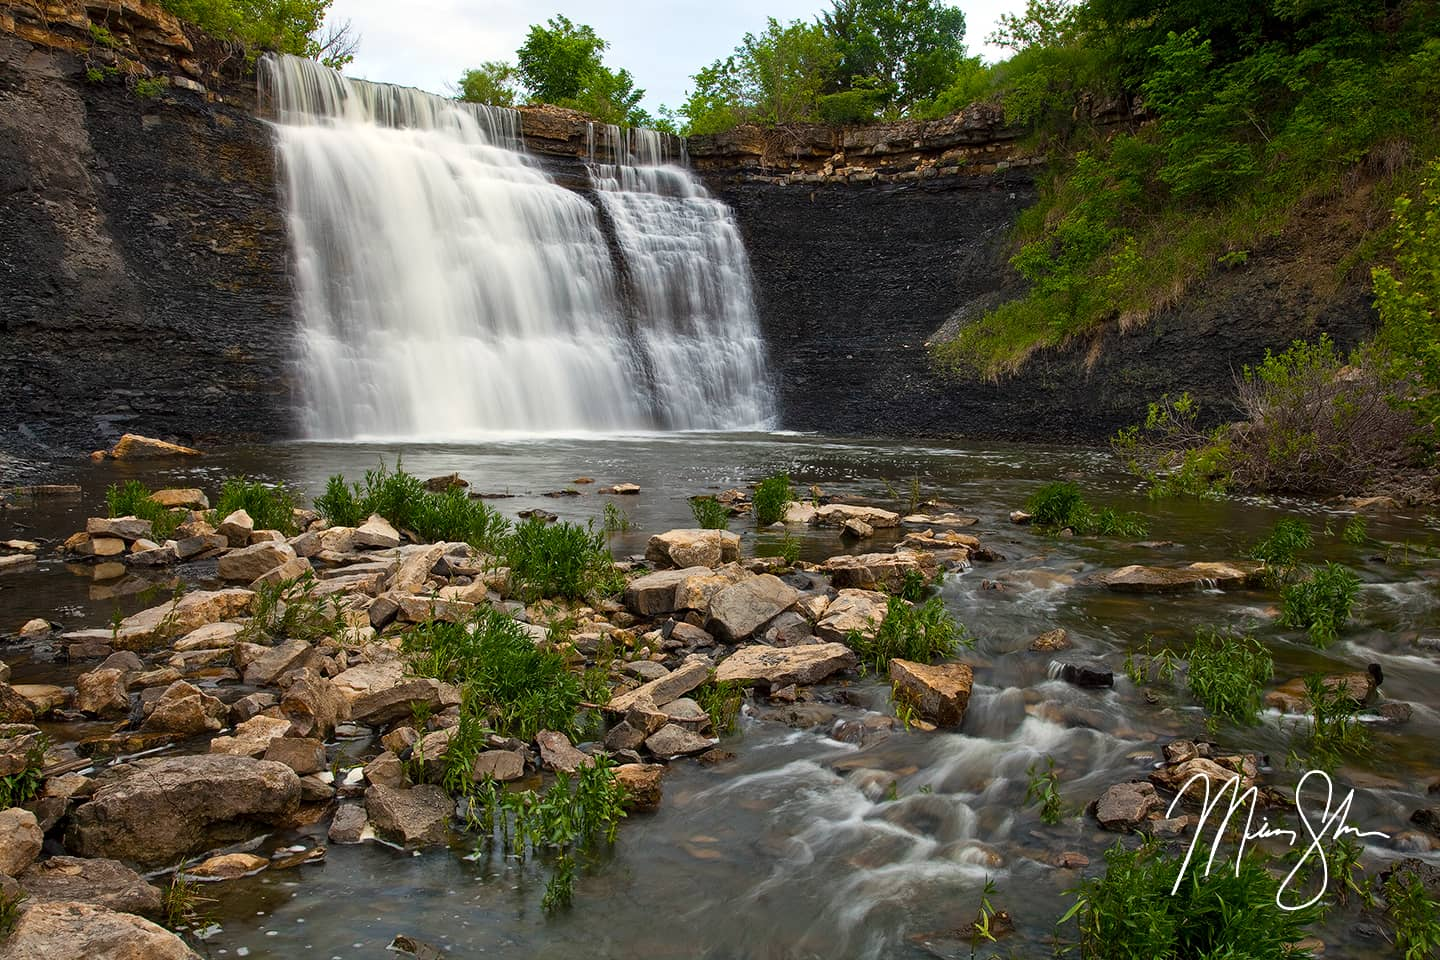 Open edition fine art print of Bourbon Falls from Mickey Shannon Photography. Location: Bourbon Falls, Bourbon State Fishing Lake, Kansas